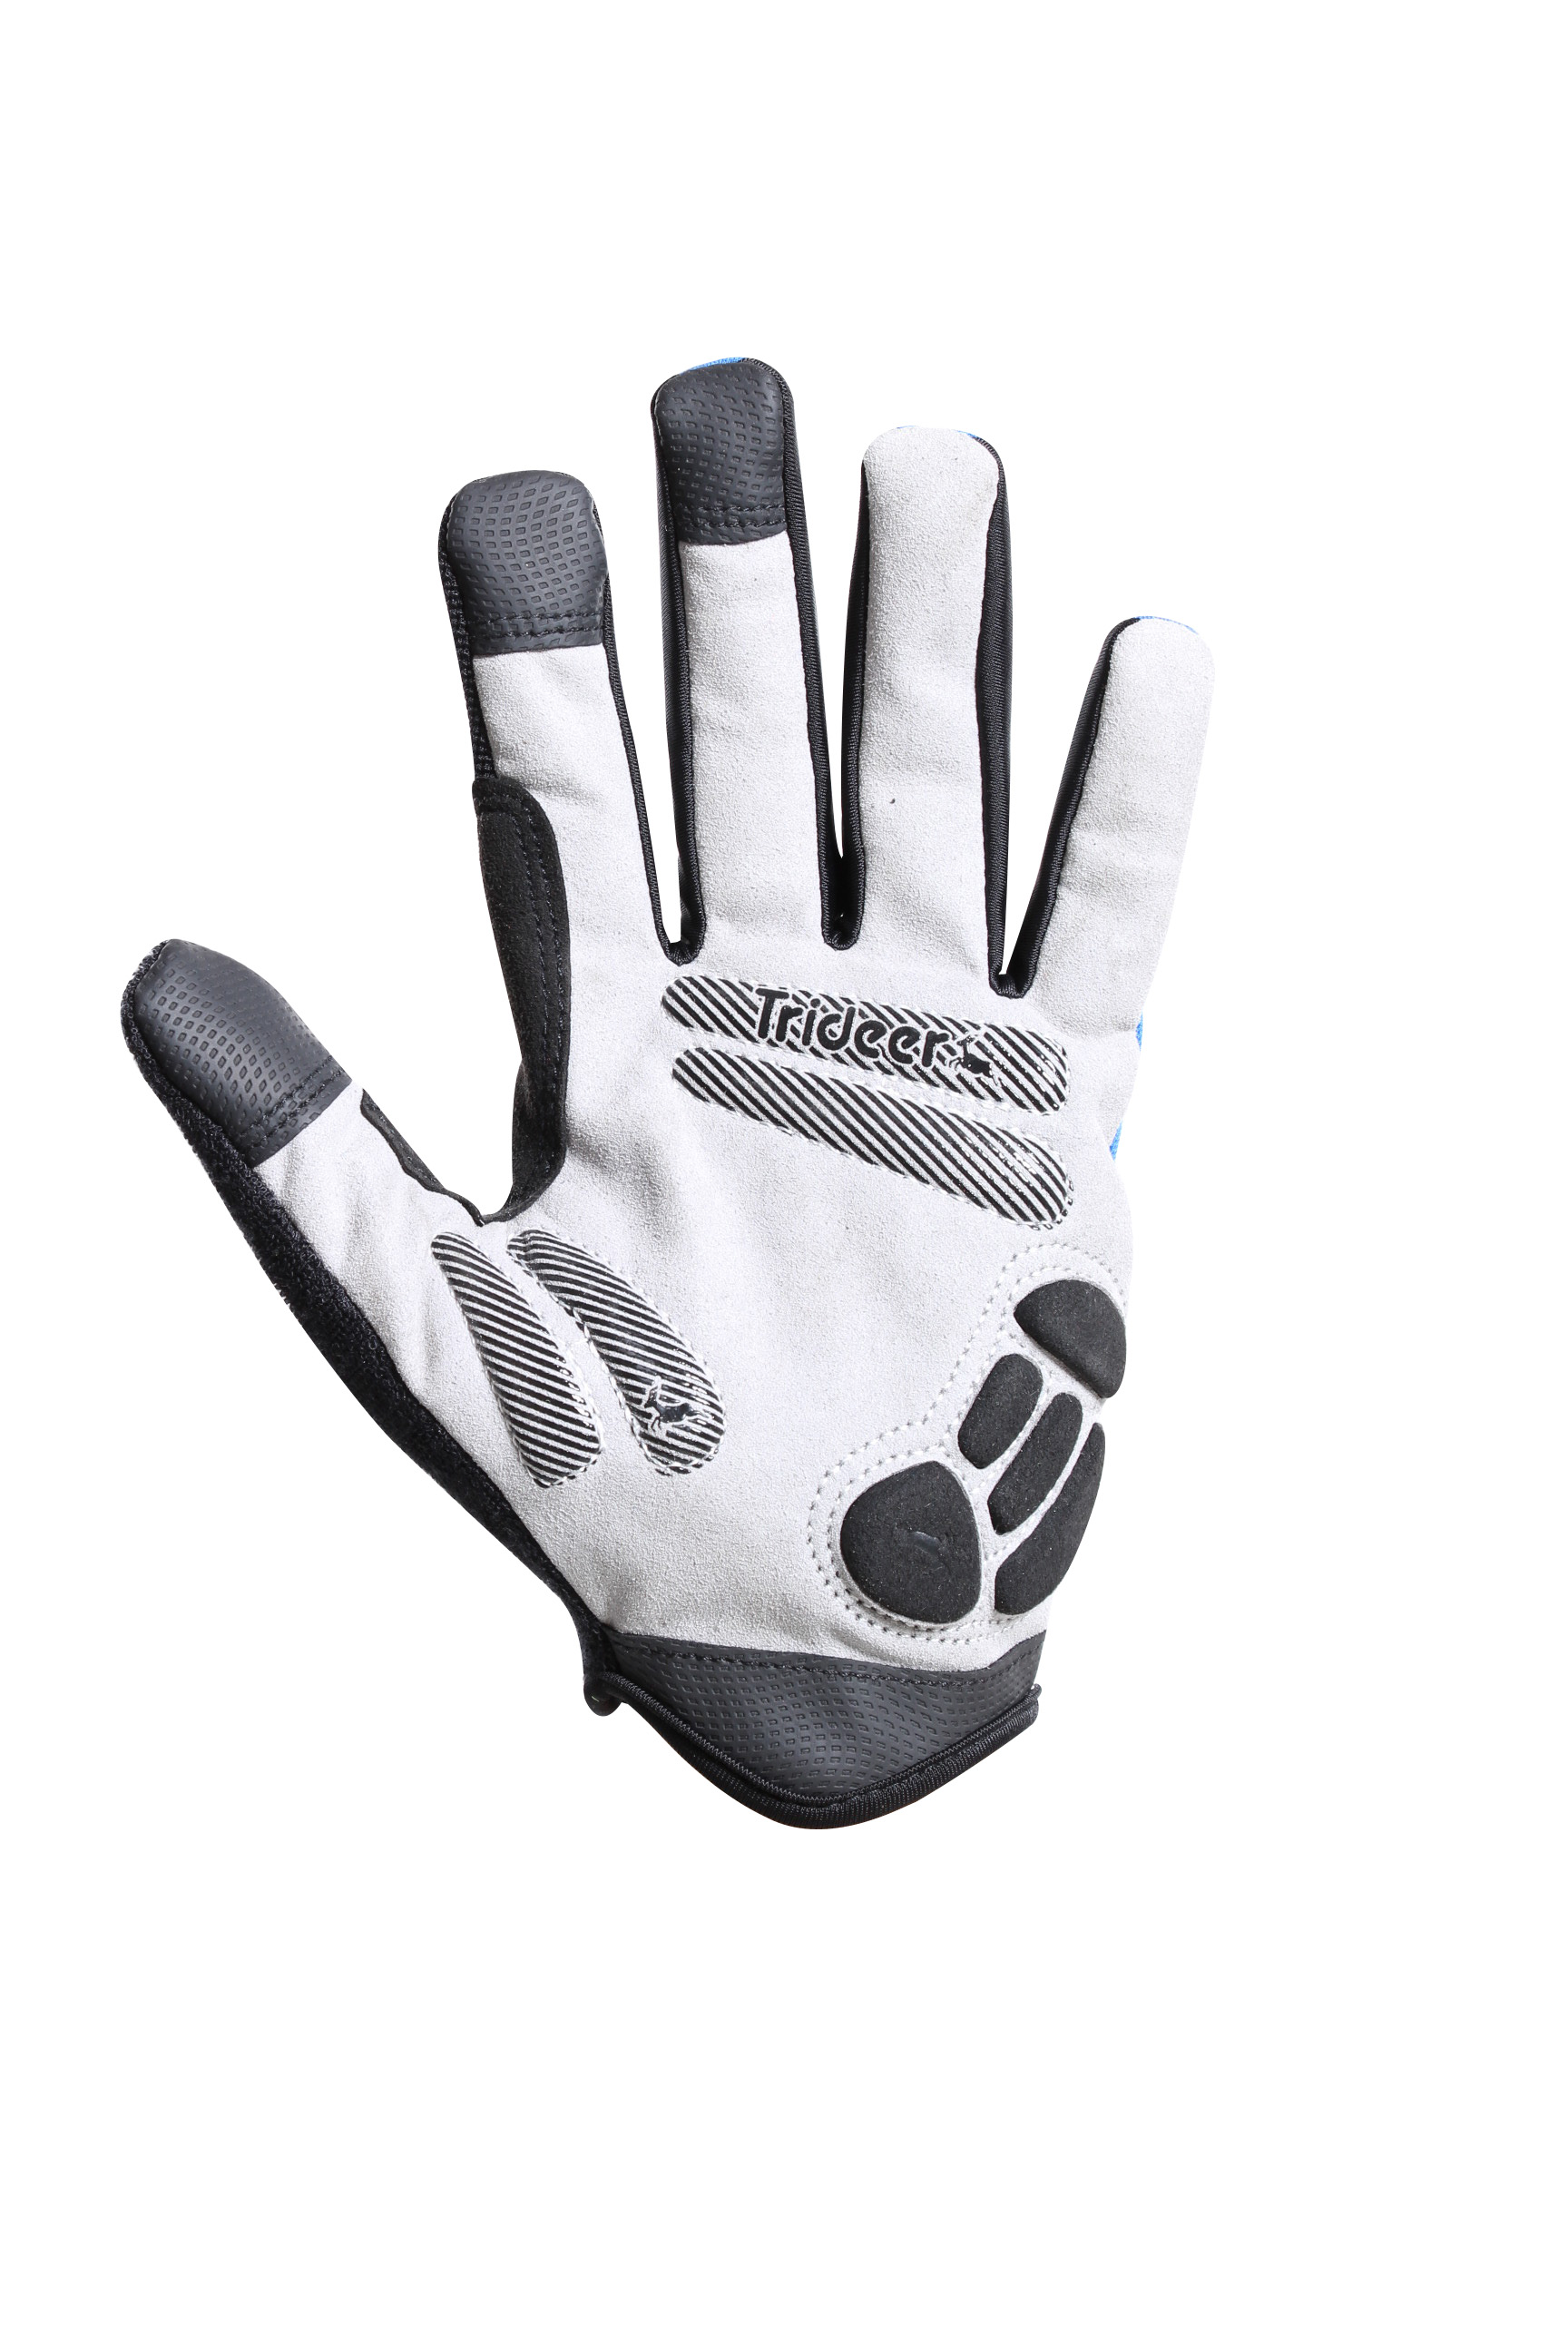 OEM special cycling gloves